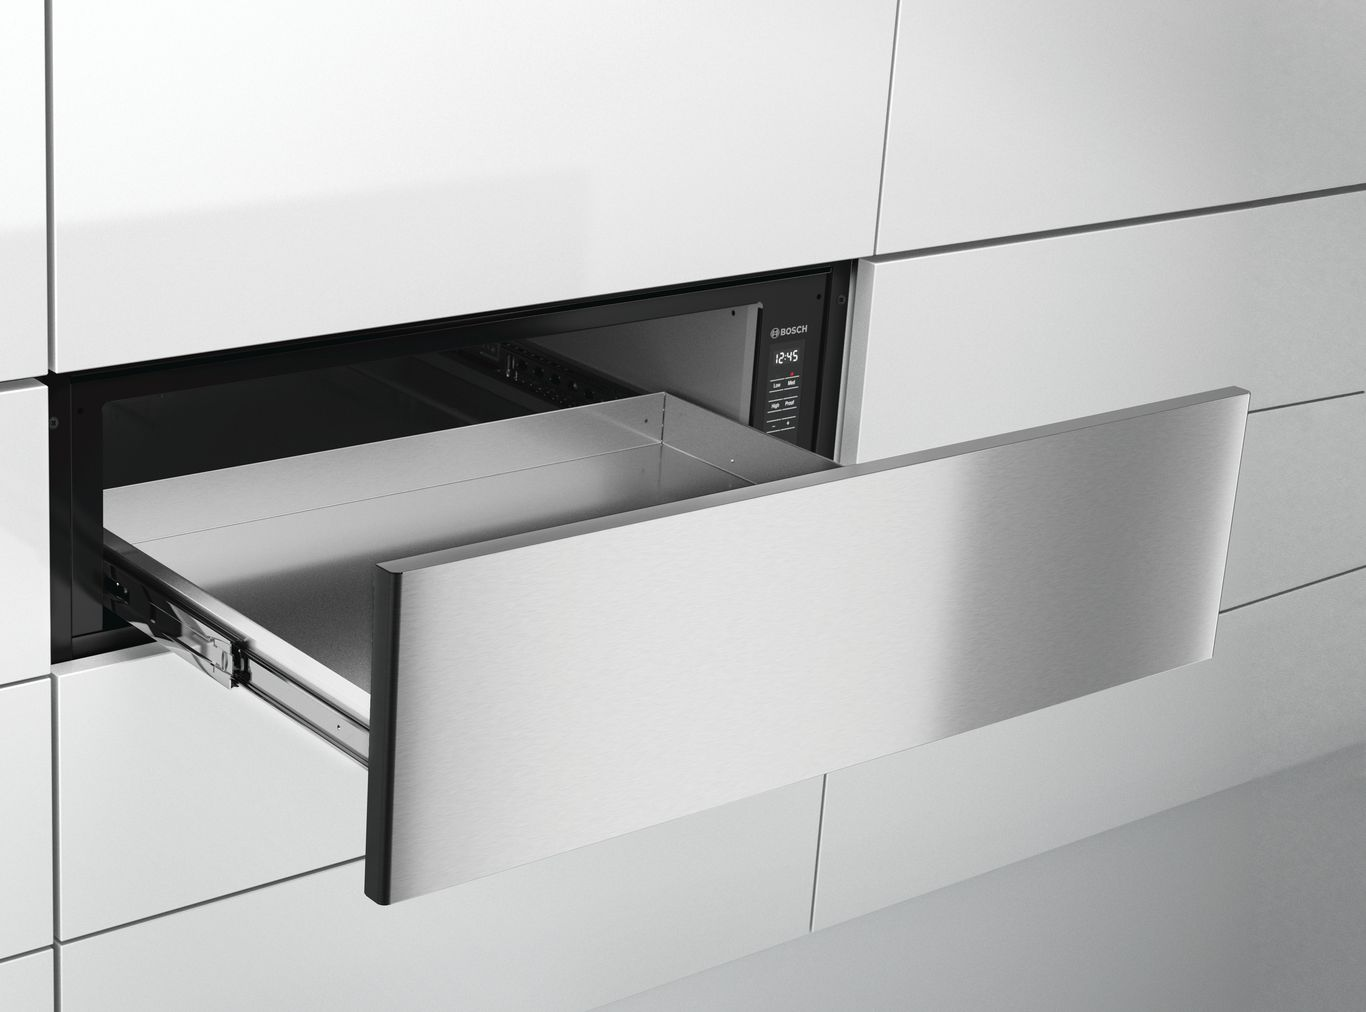 "Model: HWD5051UC | Bosch 30"" Warming Drawer, HWD5051UC, Stainless Steel"